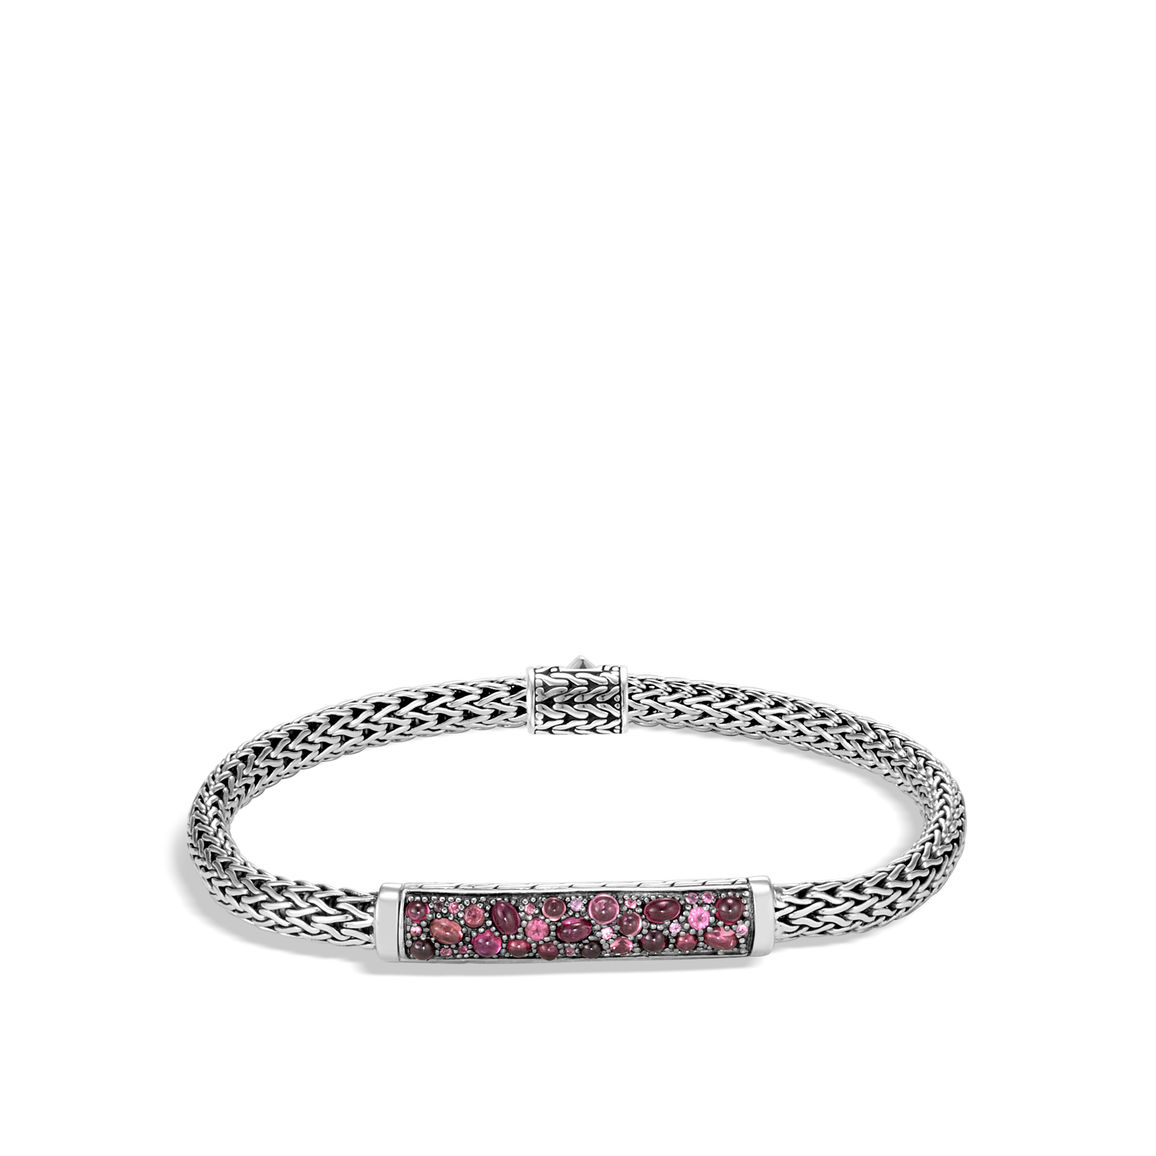 Bracelet - Sterling Silver Classic Chain Extra Small Bracelet With Round Pink Spinel, Dark Pink Tourmaline, Pink Tourmaline, And Pink Garnet, Medium